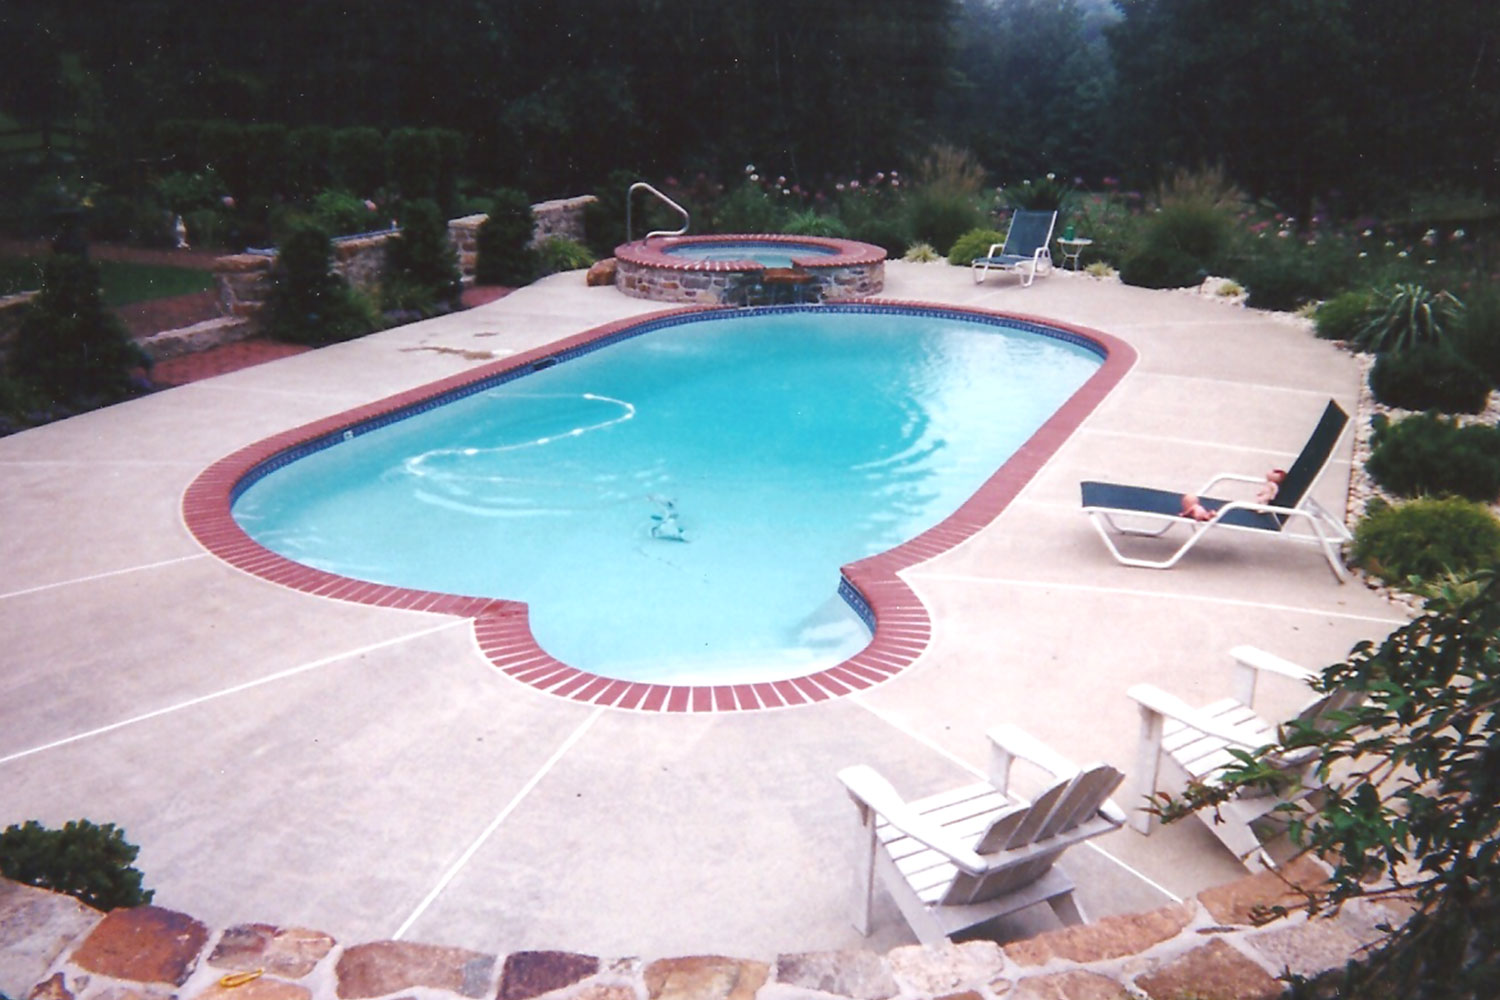 Complete Renovation, 1996: Brick Coping, Tile, Re-Plaster, New Concrete Deck and added Raised Spa, New Hope, PA